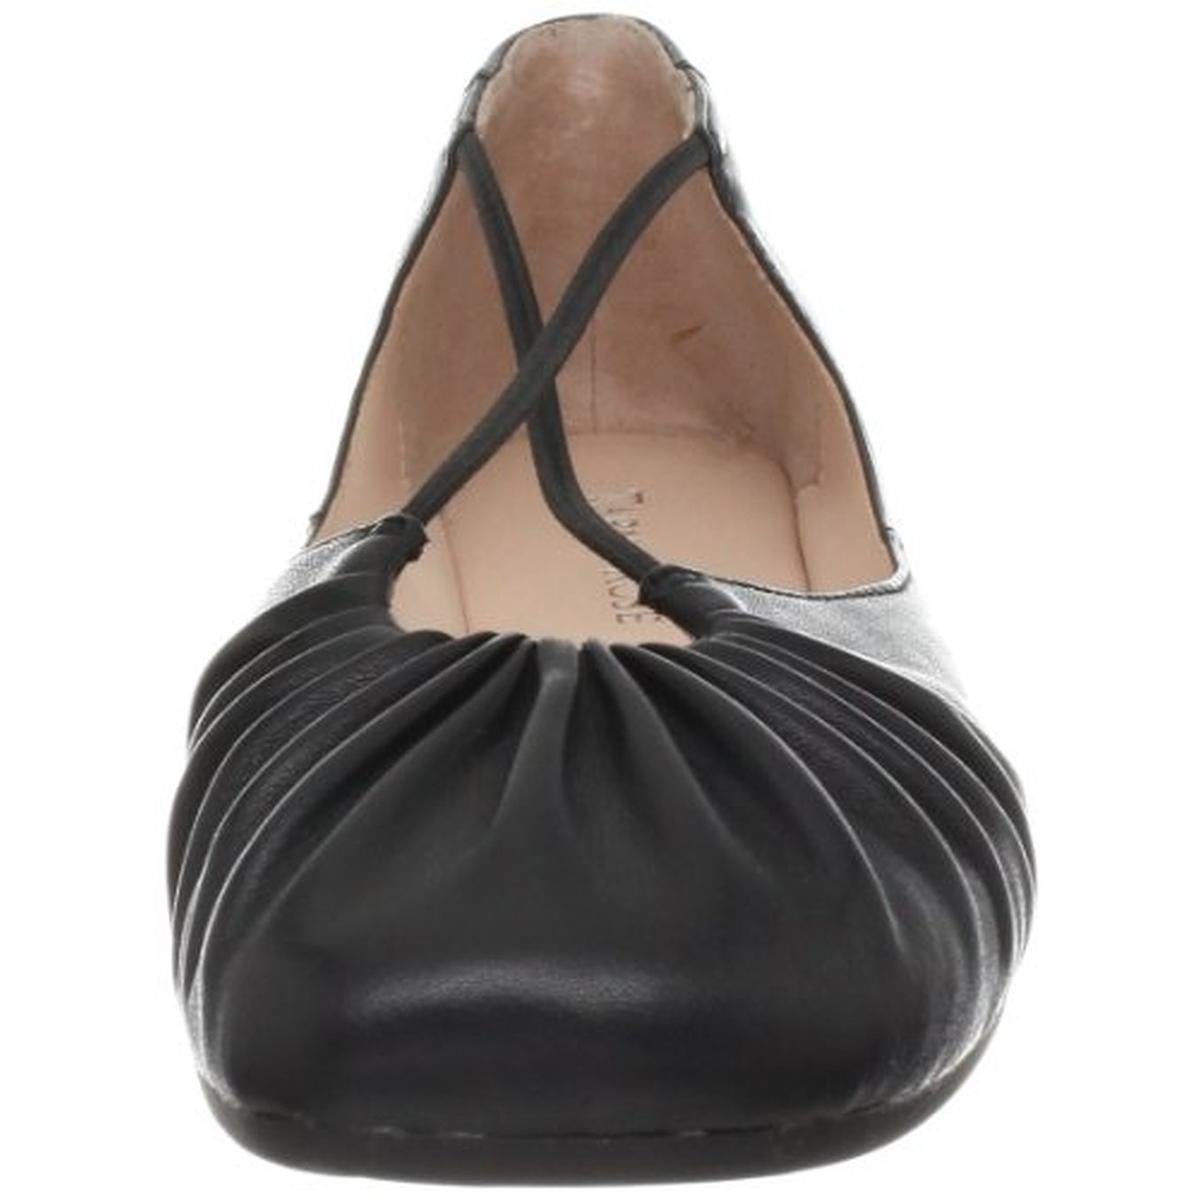 f906b88d14a Shop Taryn Rose Womens Bryan Ballet Flats Faux Leather Ruched - Free  Shipping Today - Overstock.com - 21480673